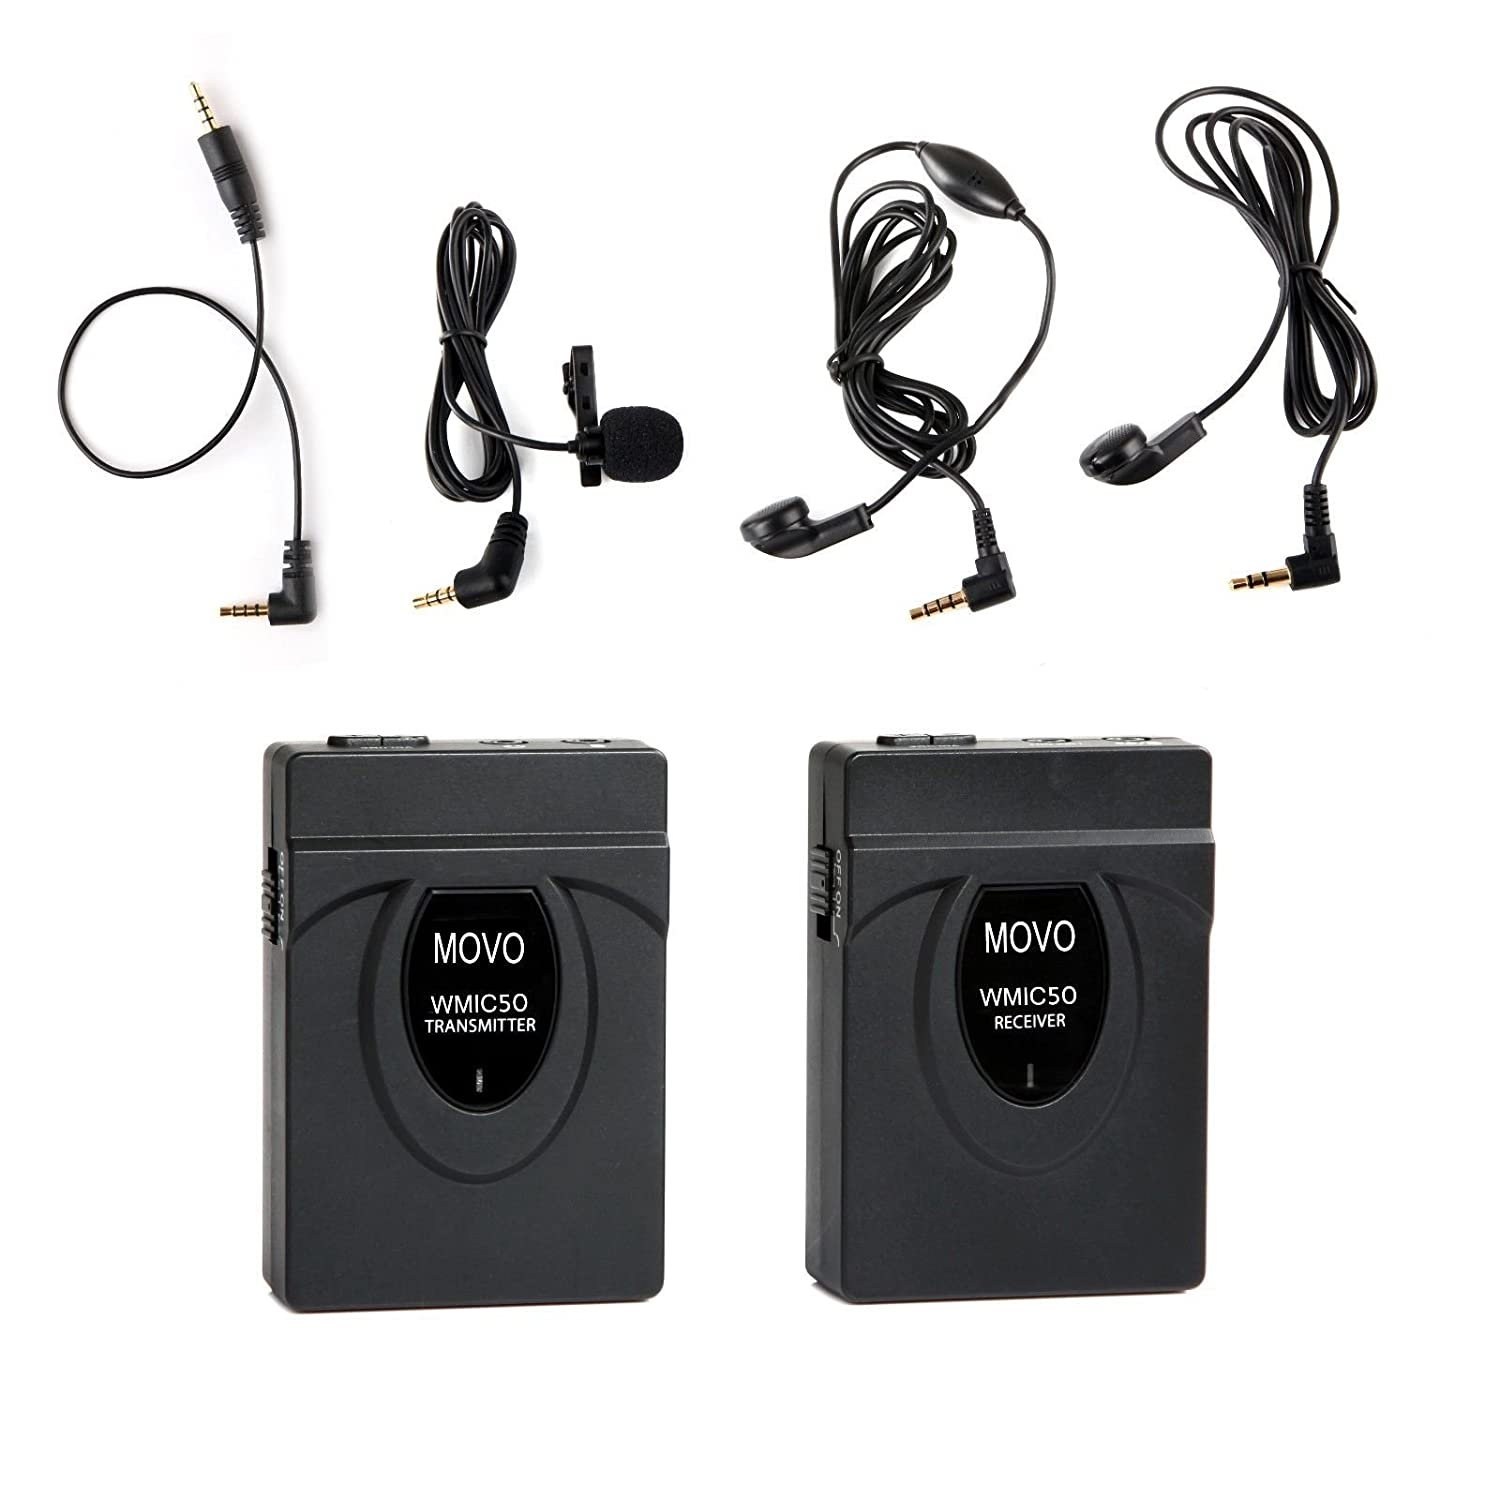 Movo WMIC50 2.4GHz Wireless Lavalier Microphone System with Integrated 164-foot Range Antenna (Includes Transmitter with Belt Clip, Receiver with Camera Shoe, Lavalier & 2 Earphones)